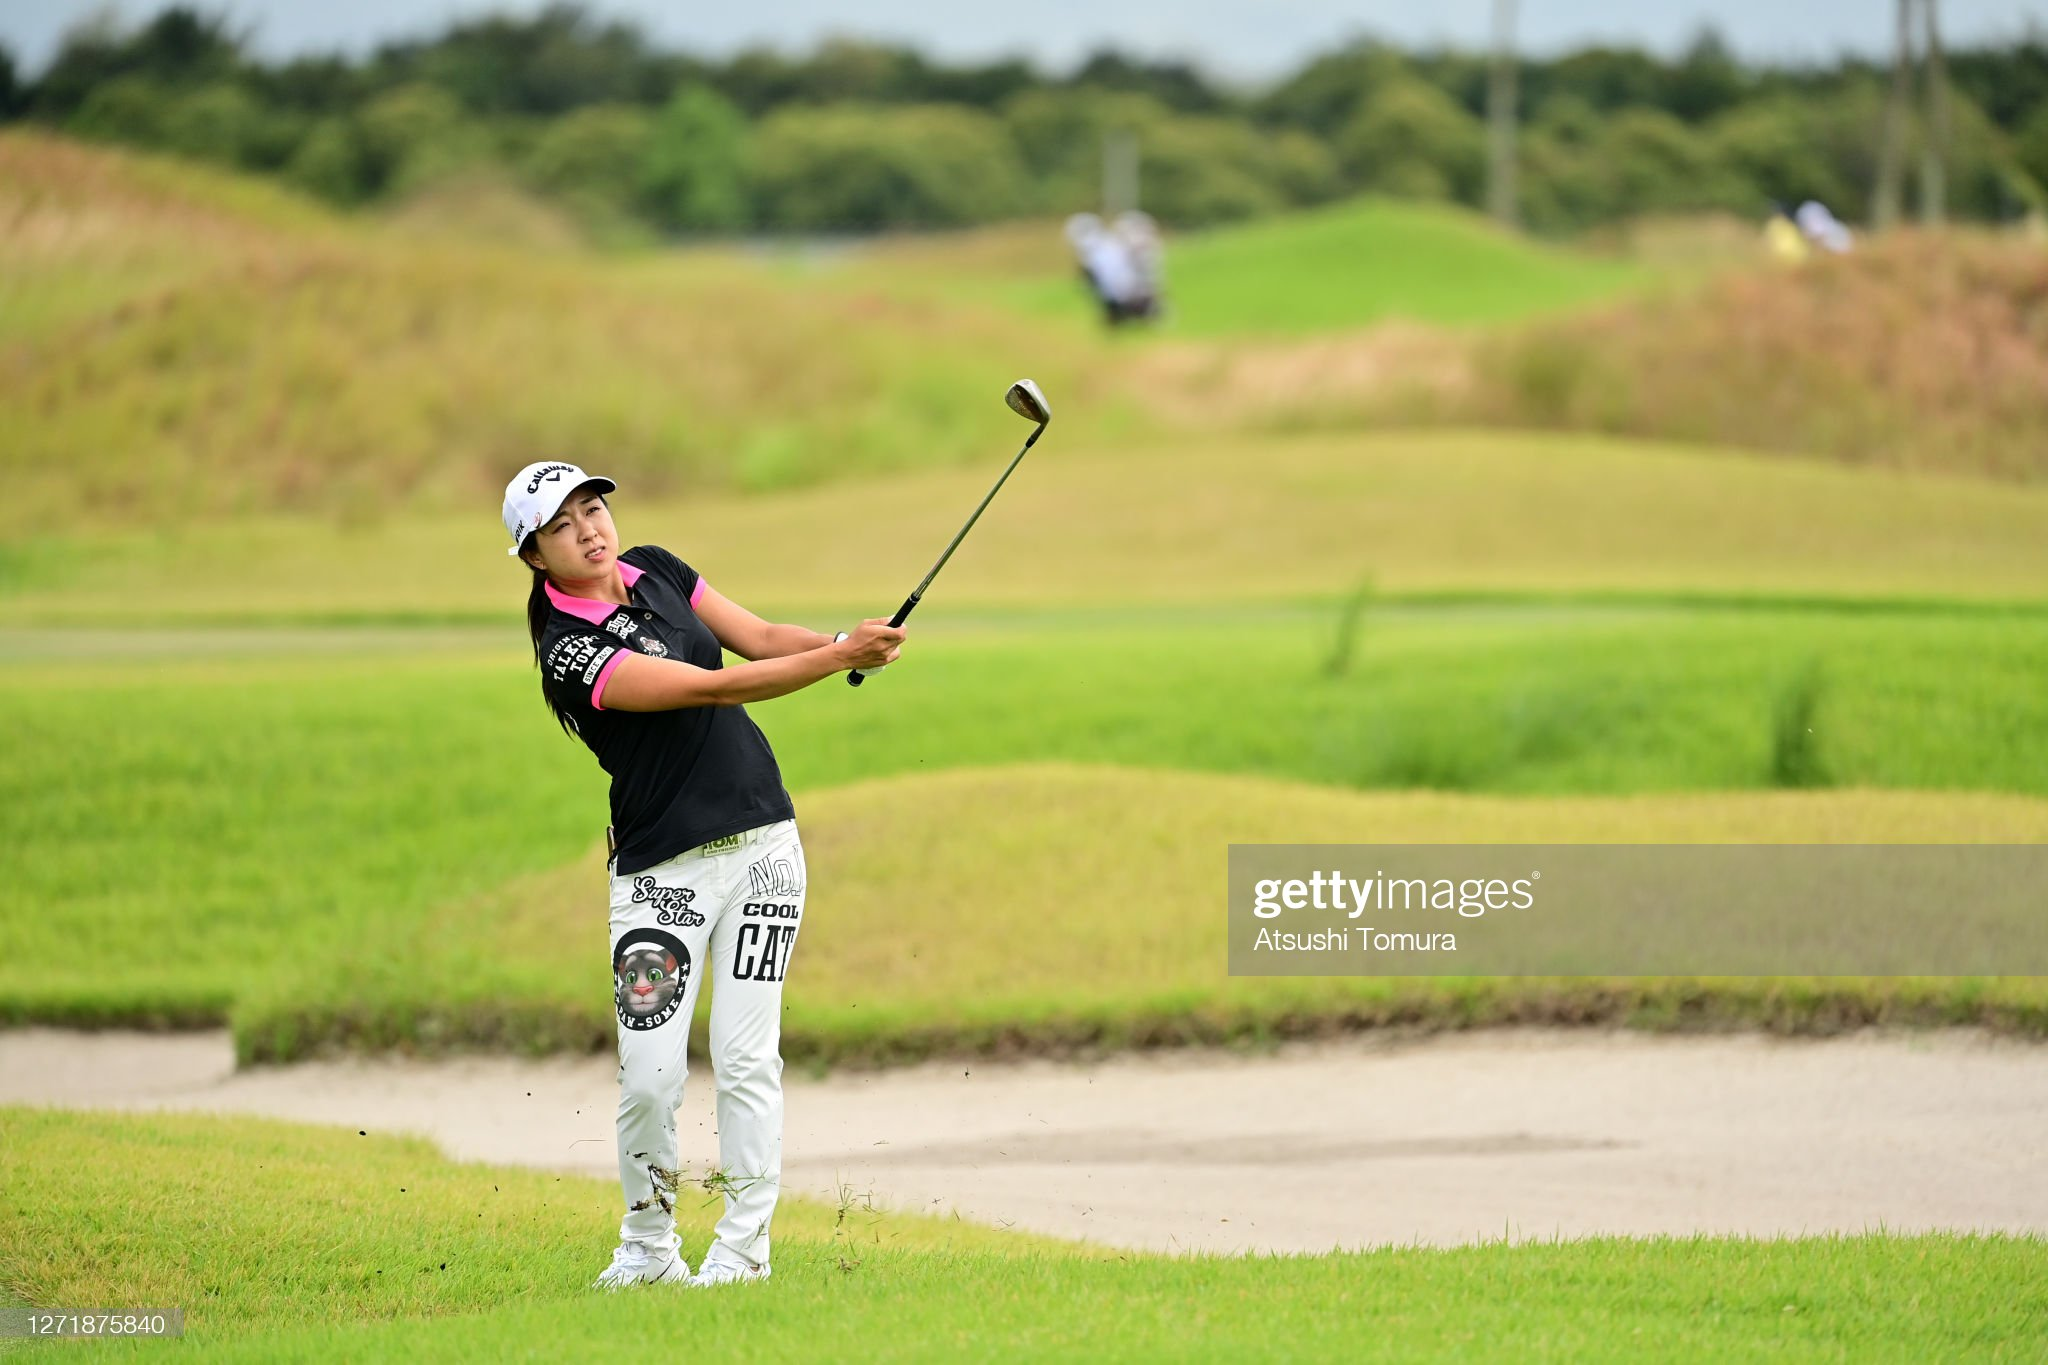 https://media.gettyimages.com/photos/solar-lee-of-south-korea-hits-her-third-shot-on-the-6th-hole-during-picture-id1271875840?s=2048x2048